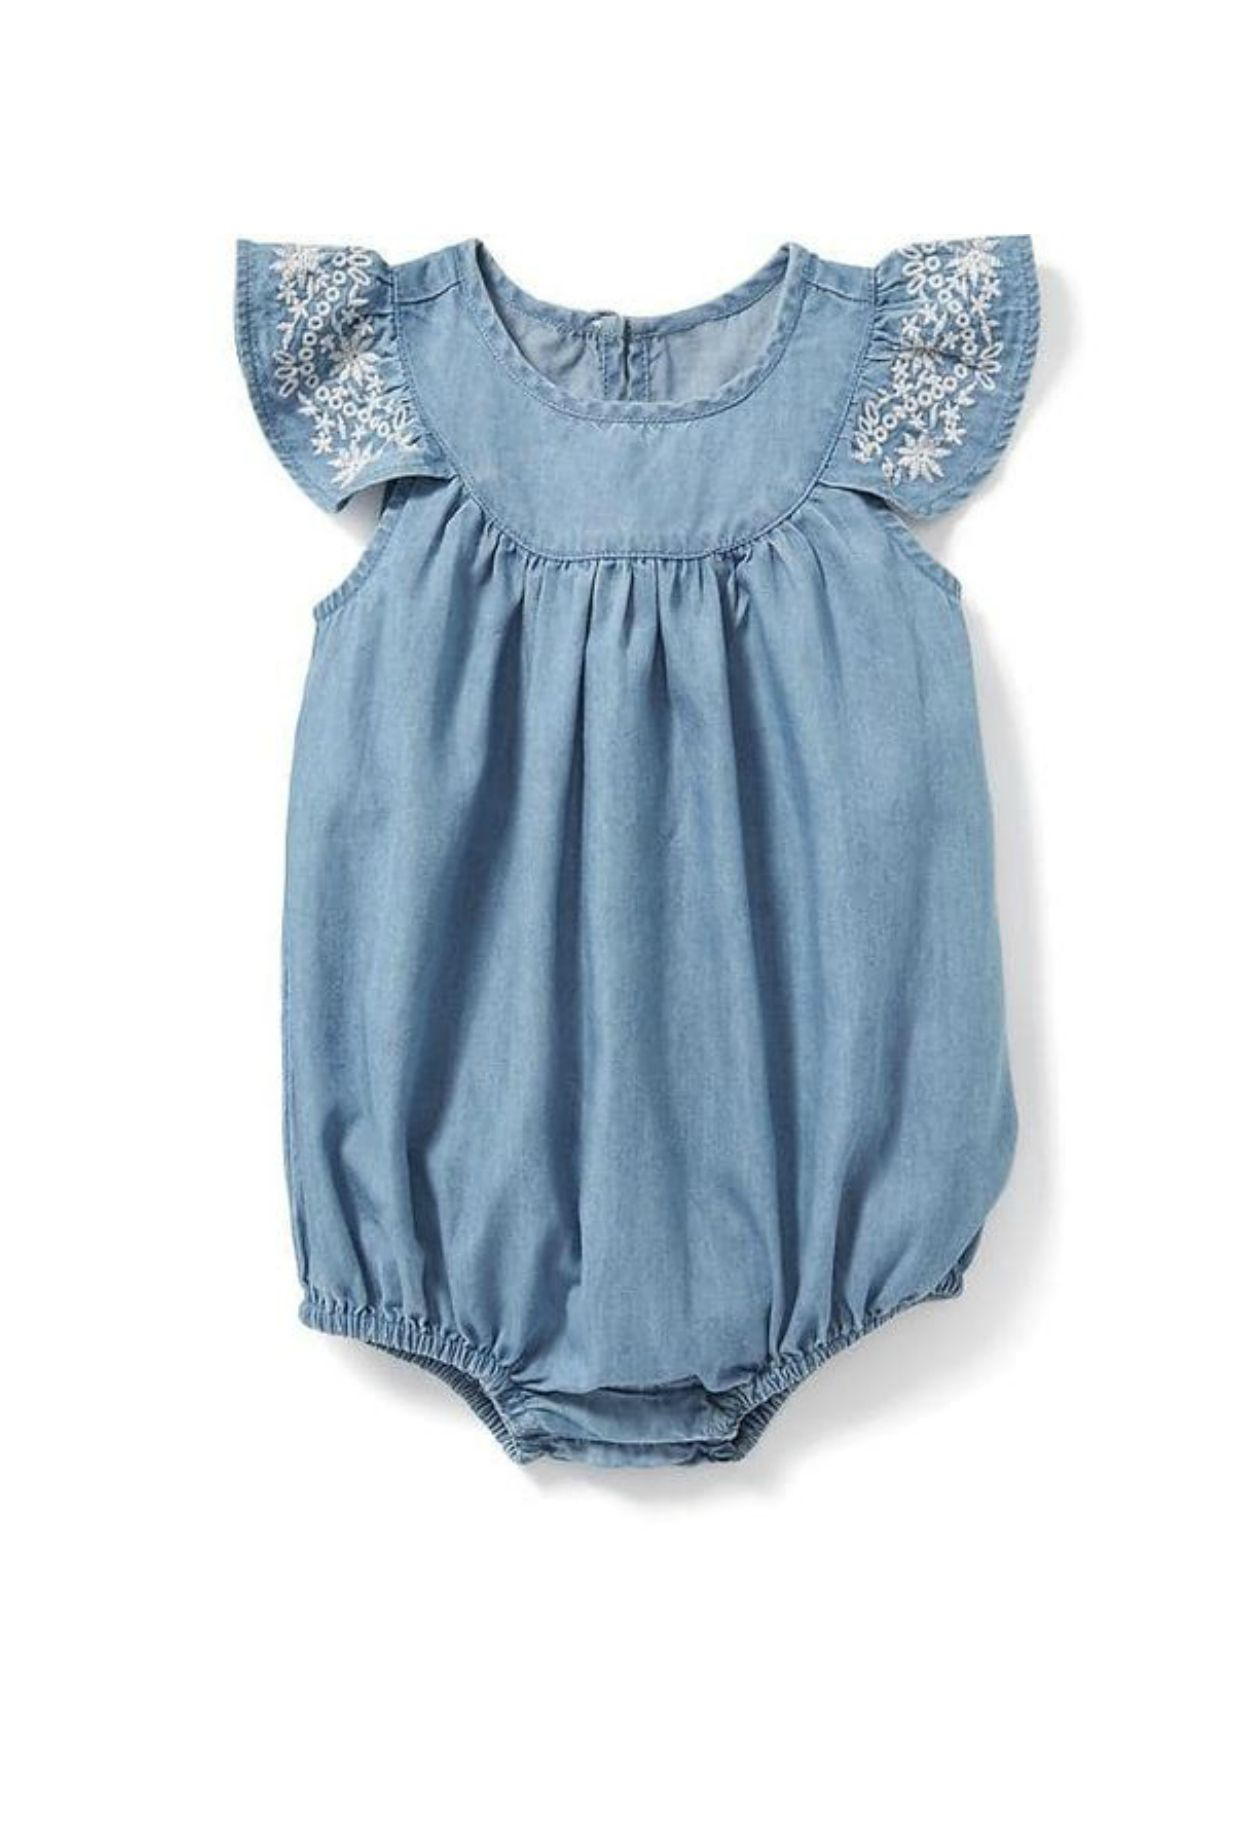 Embroidered Chambray Romper Old Navy